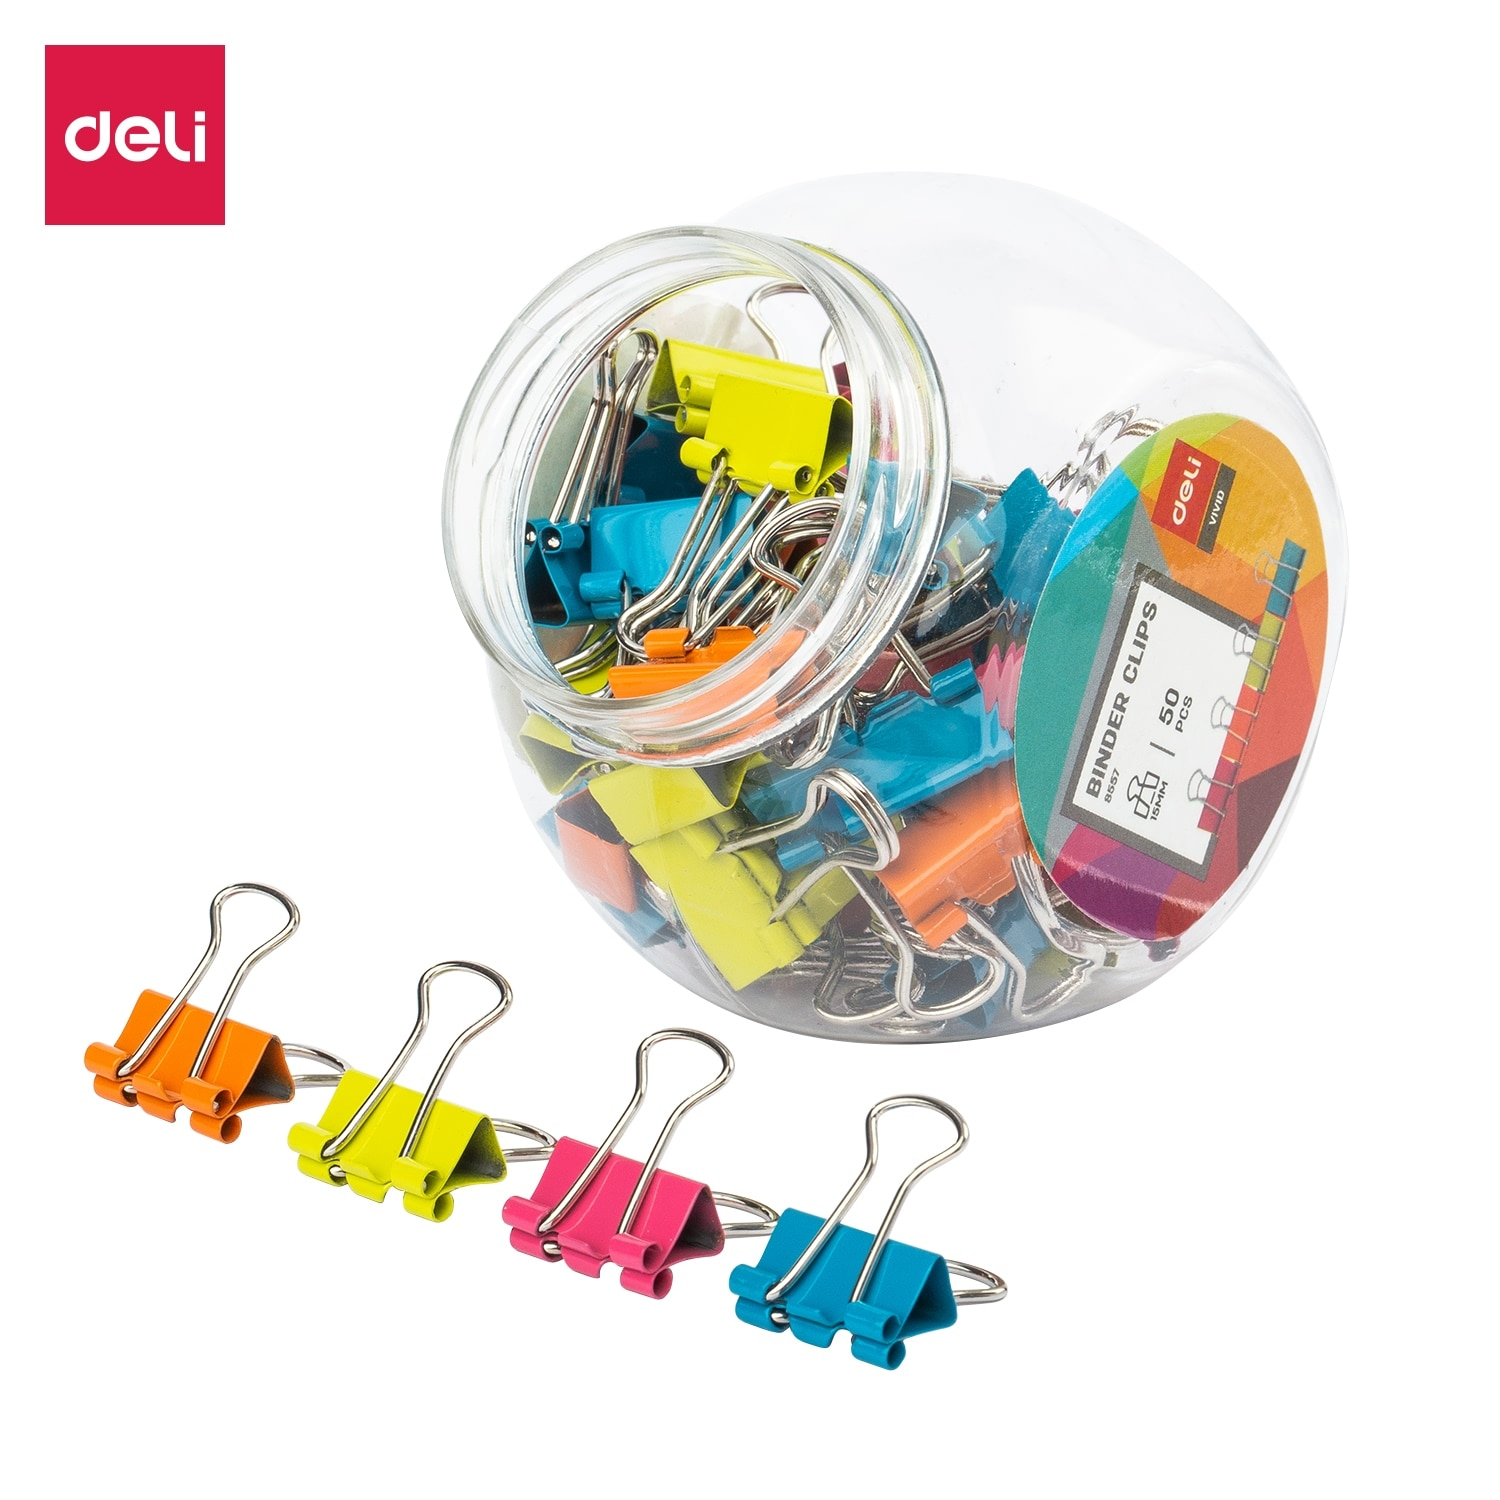 DELI 8557 Color Binder Clips 3 Sizes in Jar for books Files Binding stationery school office supplies Metal Paper Clip